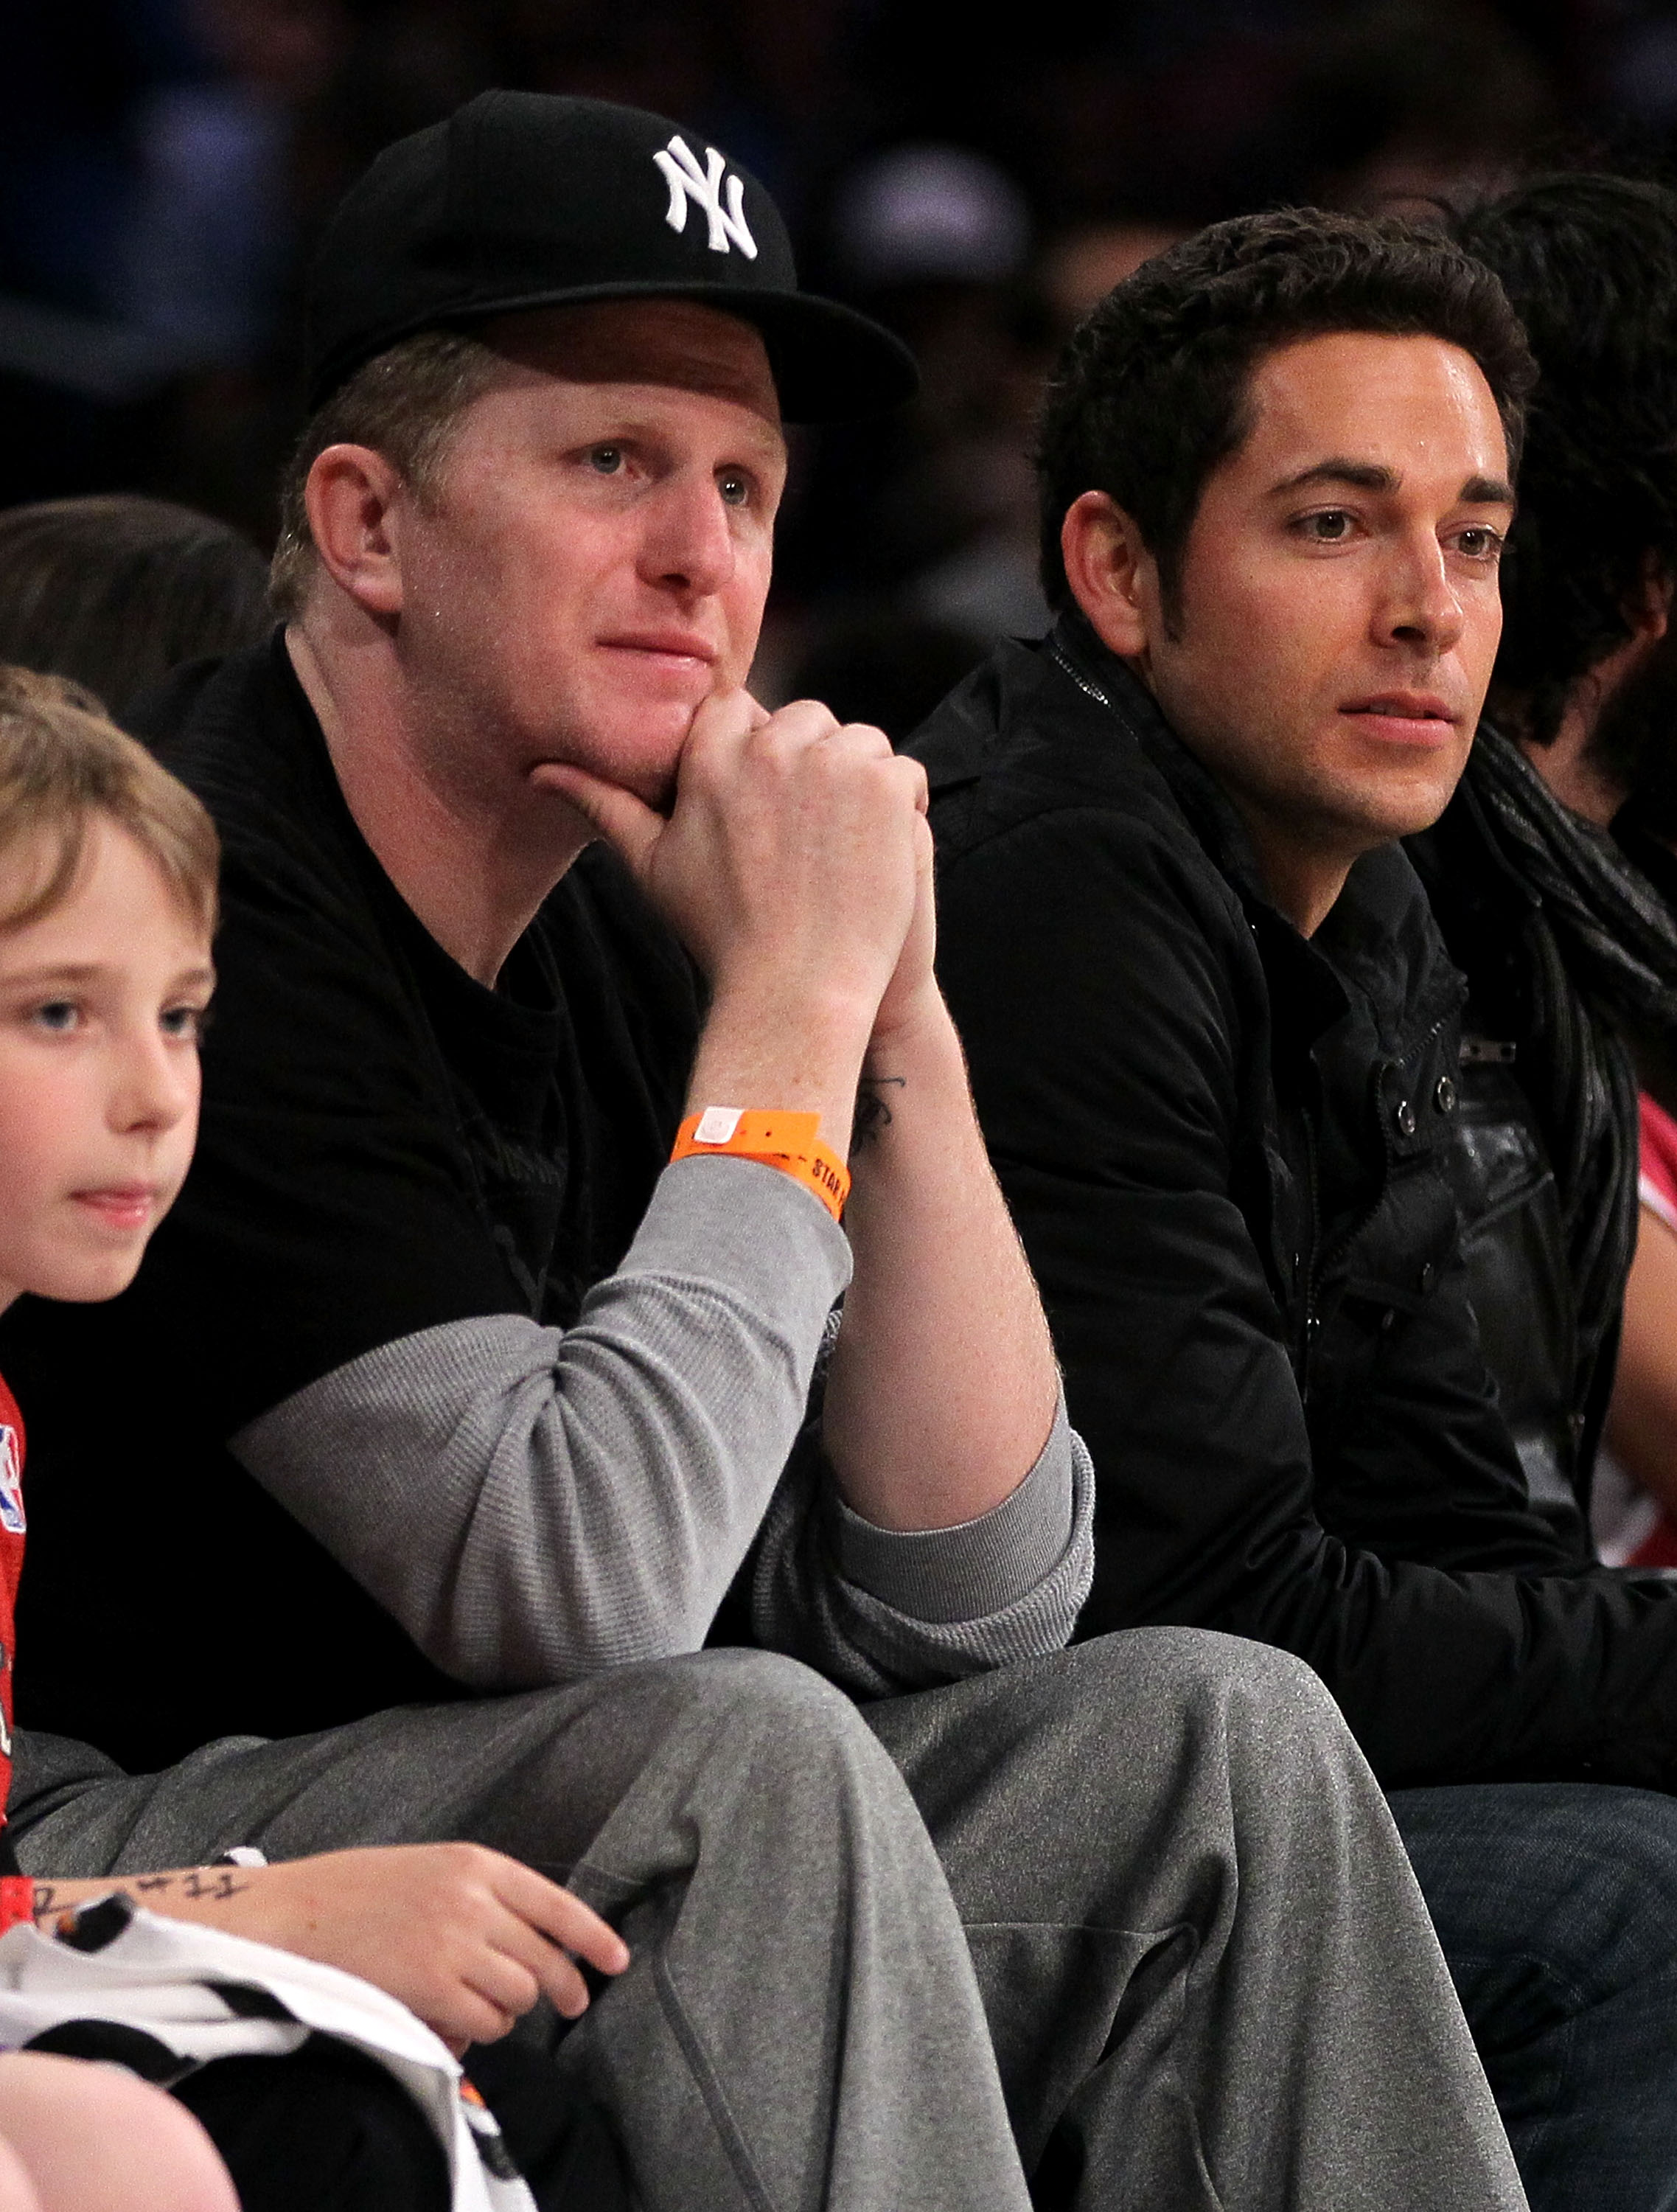 LOS ANGELES, CA - FEBRUARY 18:  Actors Michael Rapaport and Zachary Levi sit courtside during the T-Mobile Rookie Challenge and Youth Jam at Staples Center on February 18, 2011 in Los Angeles, California.  (Photo by Jeff Gross/Getty Images)